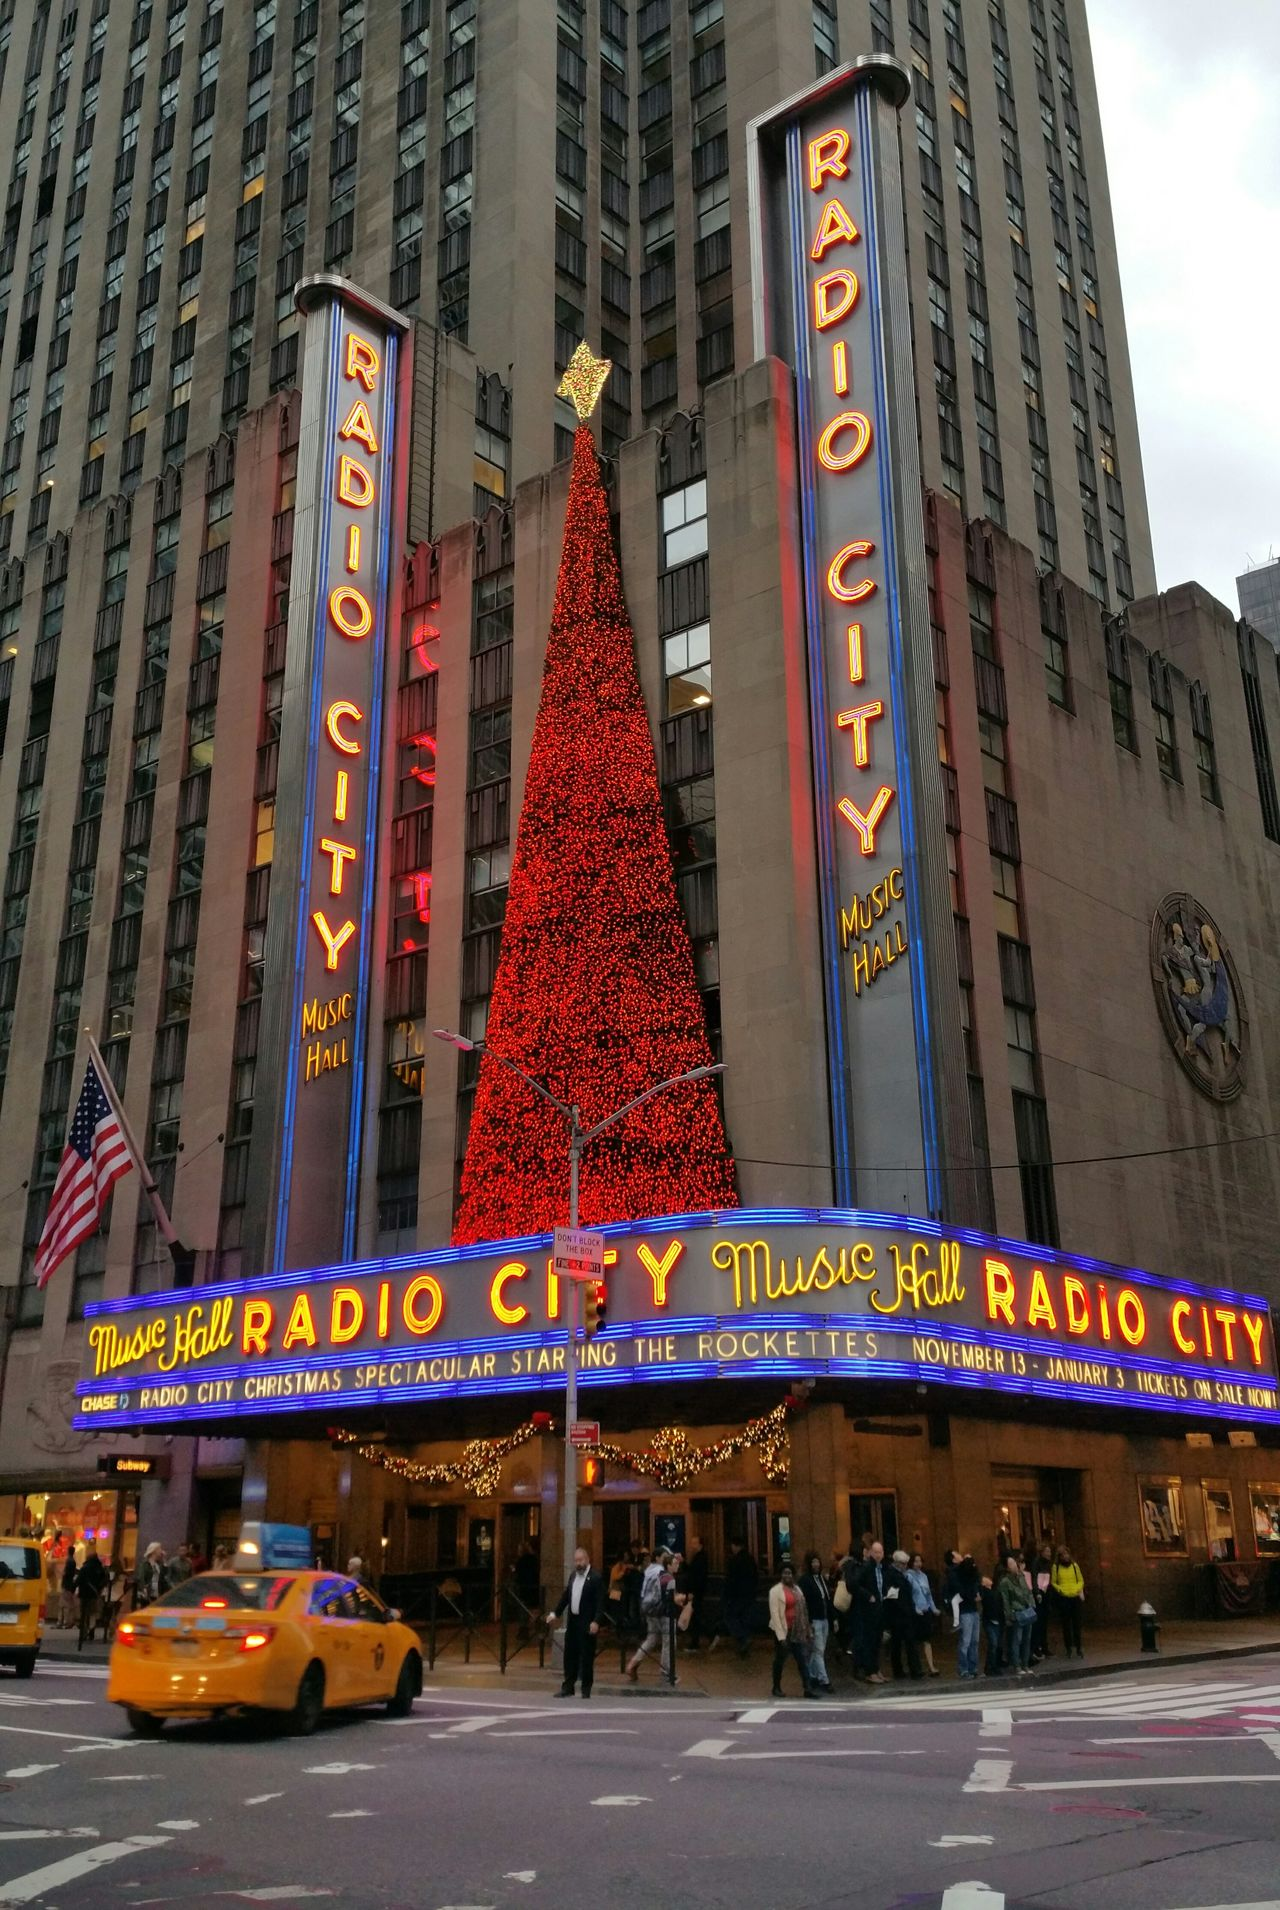 Radio City Music Hall NYC New York City EyeEm NYC Eyeem New York City NYC Photography